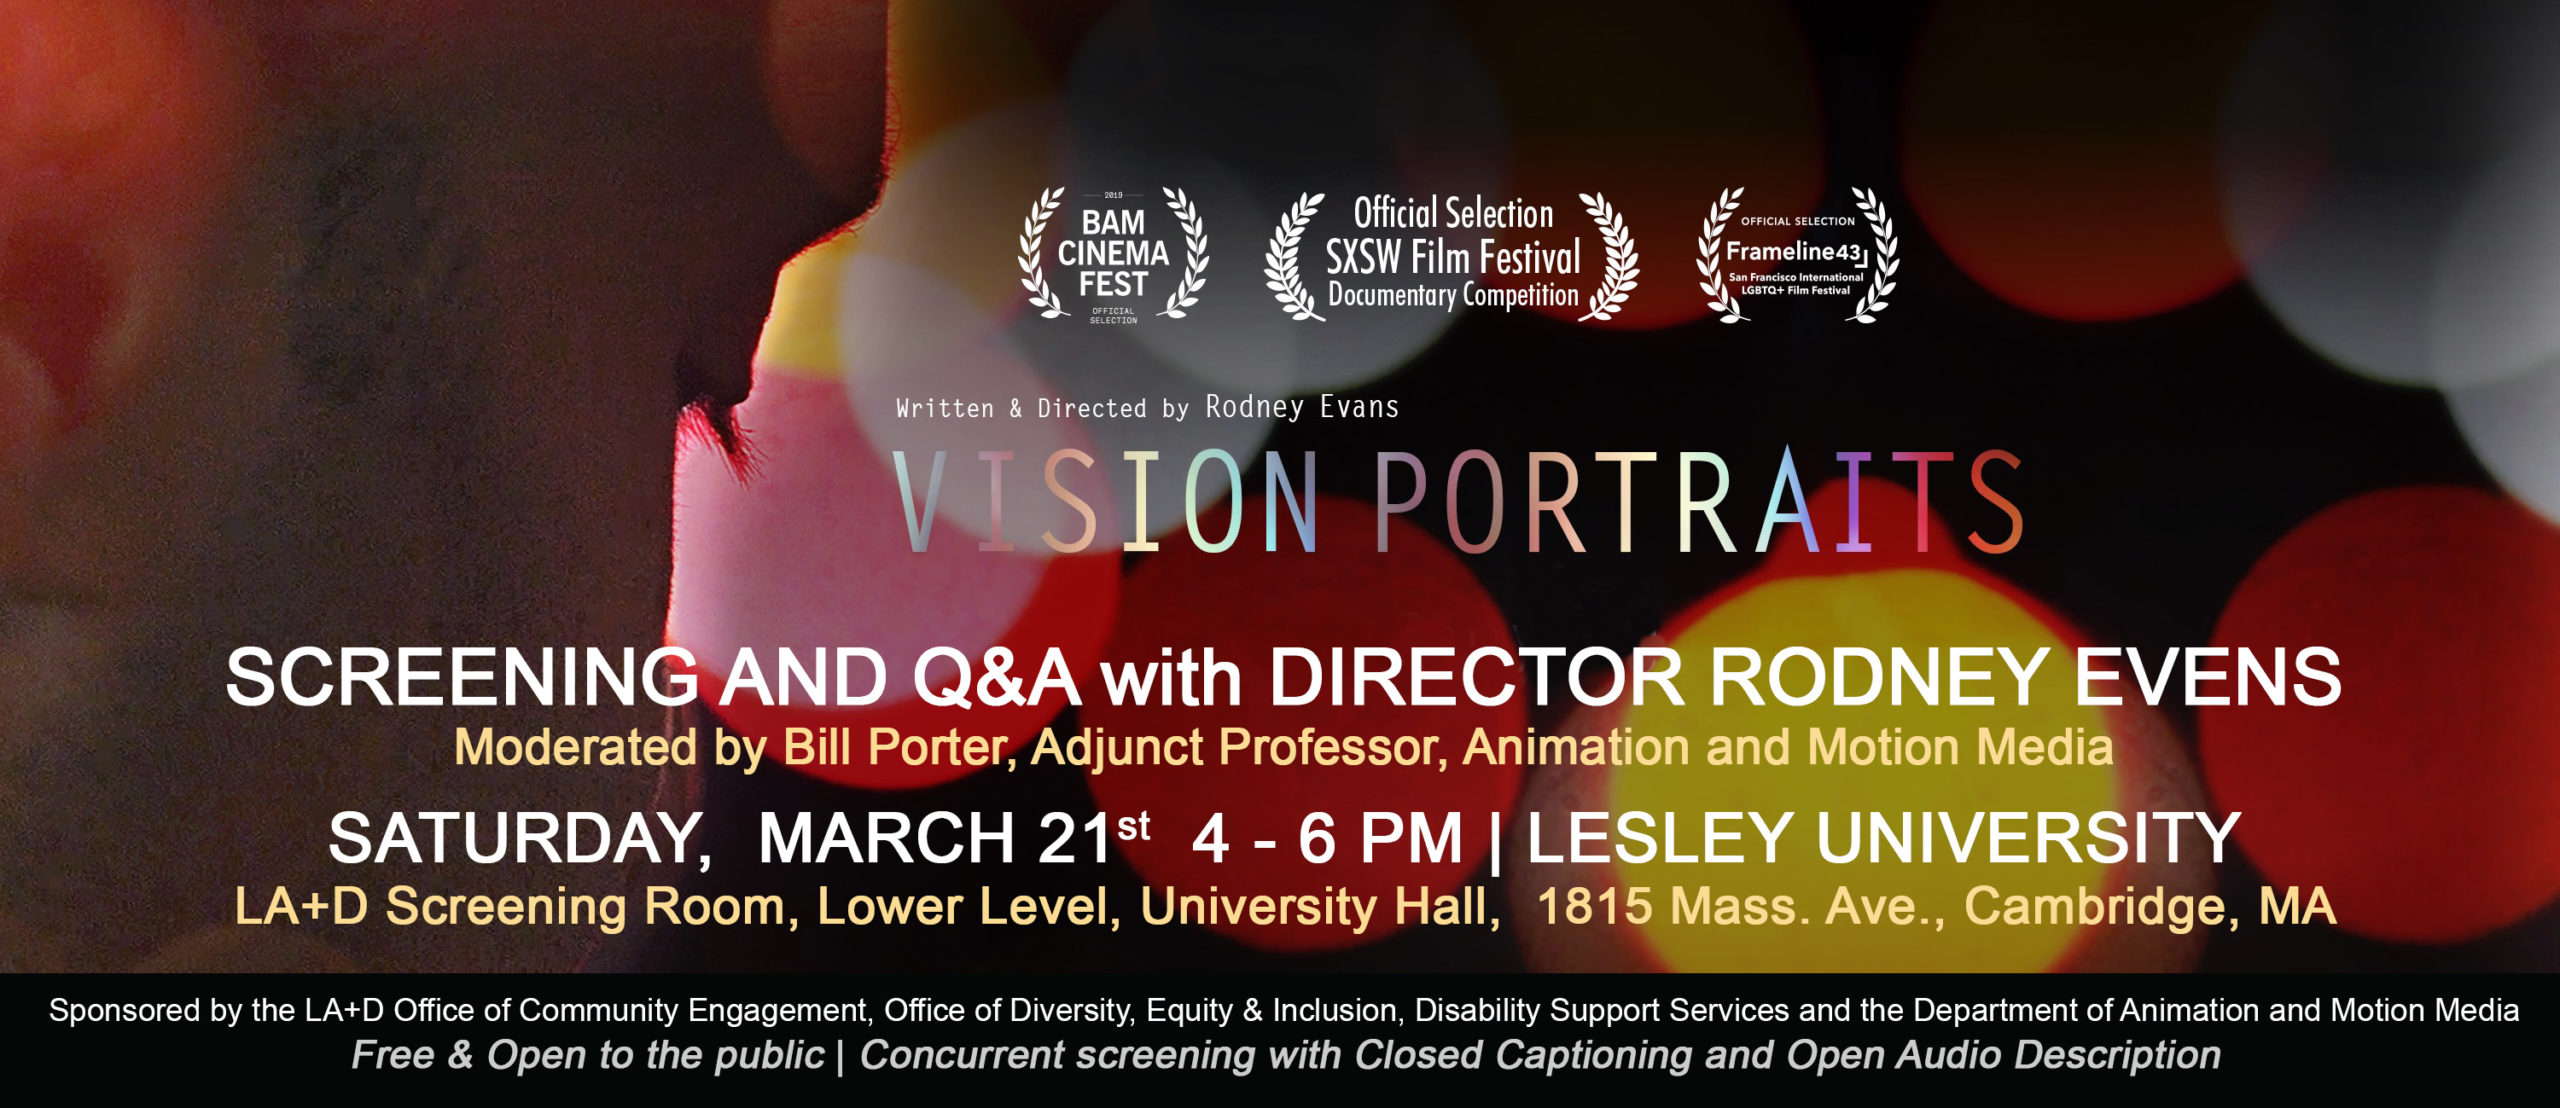 Vision Portraits Film Screening at Lesley University